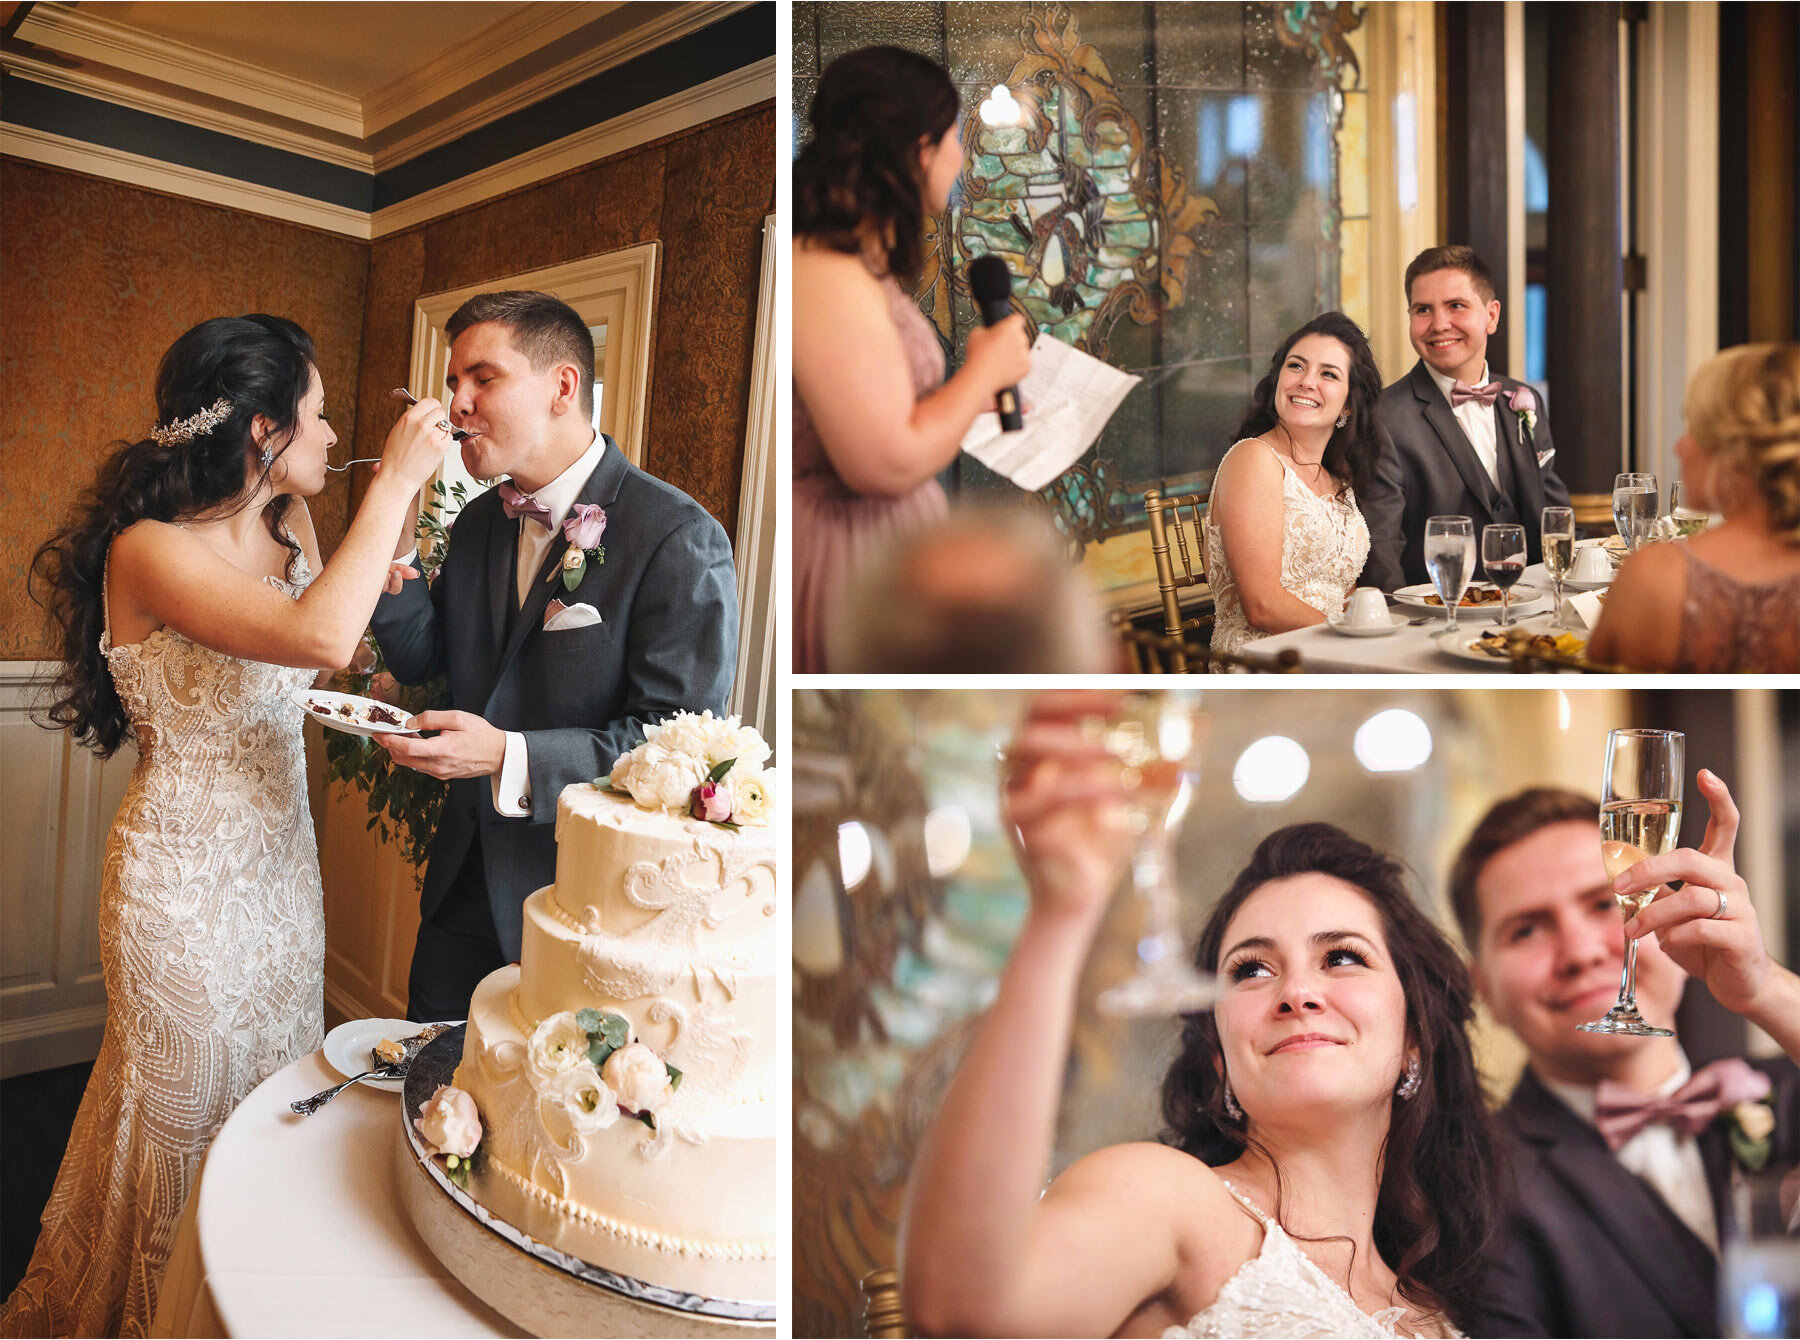 12-Wedding-by-Vick-Photography-Minneapolis-Minnesota-Semple-Mansion-Historic-Venue-Reception-Bride-Groom-Cake-Toast-Kaitlyn-and-Nate.jpg